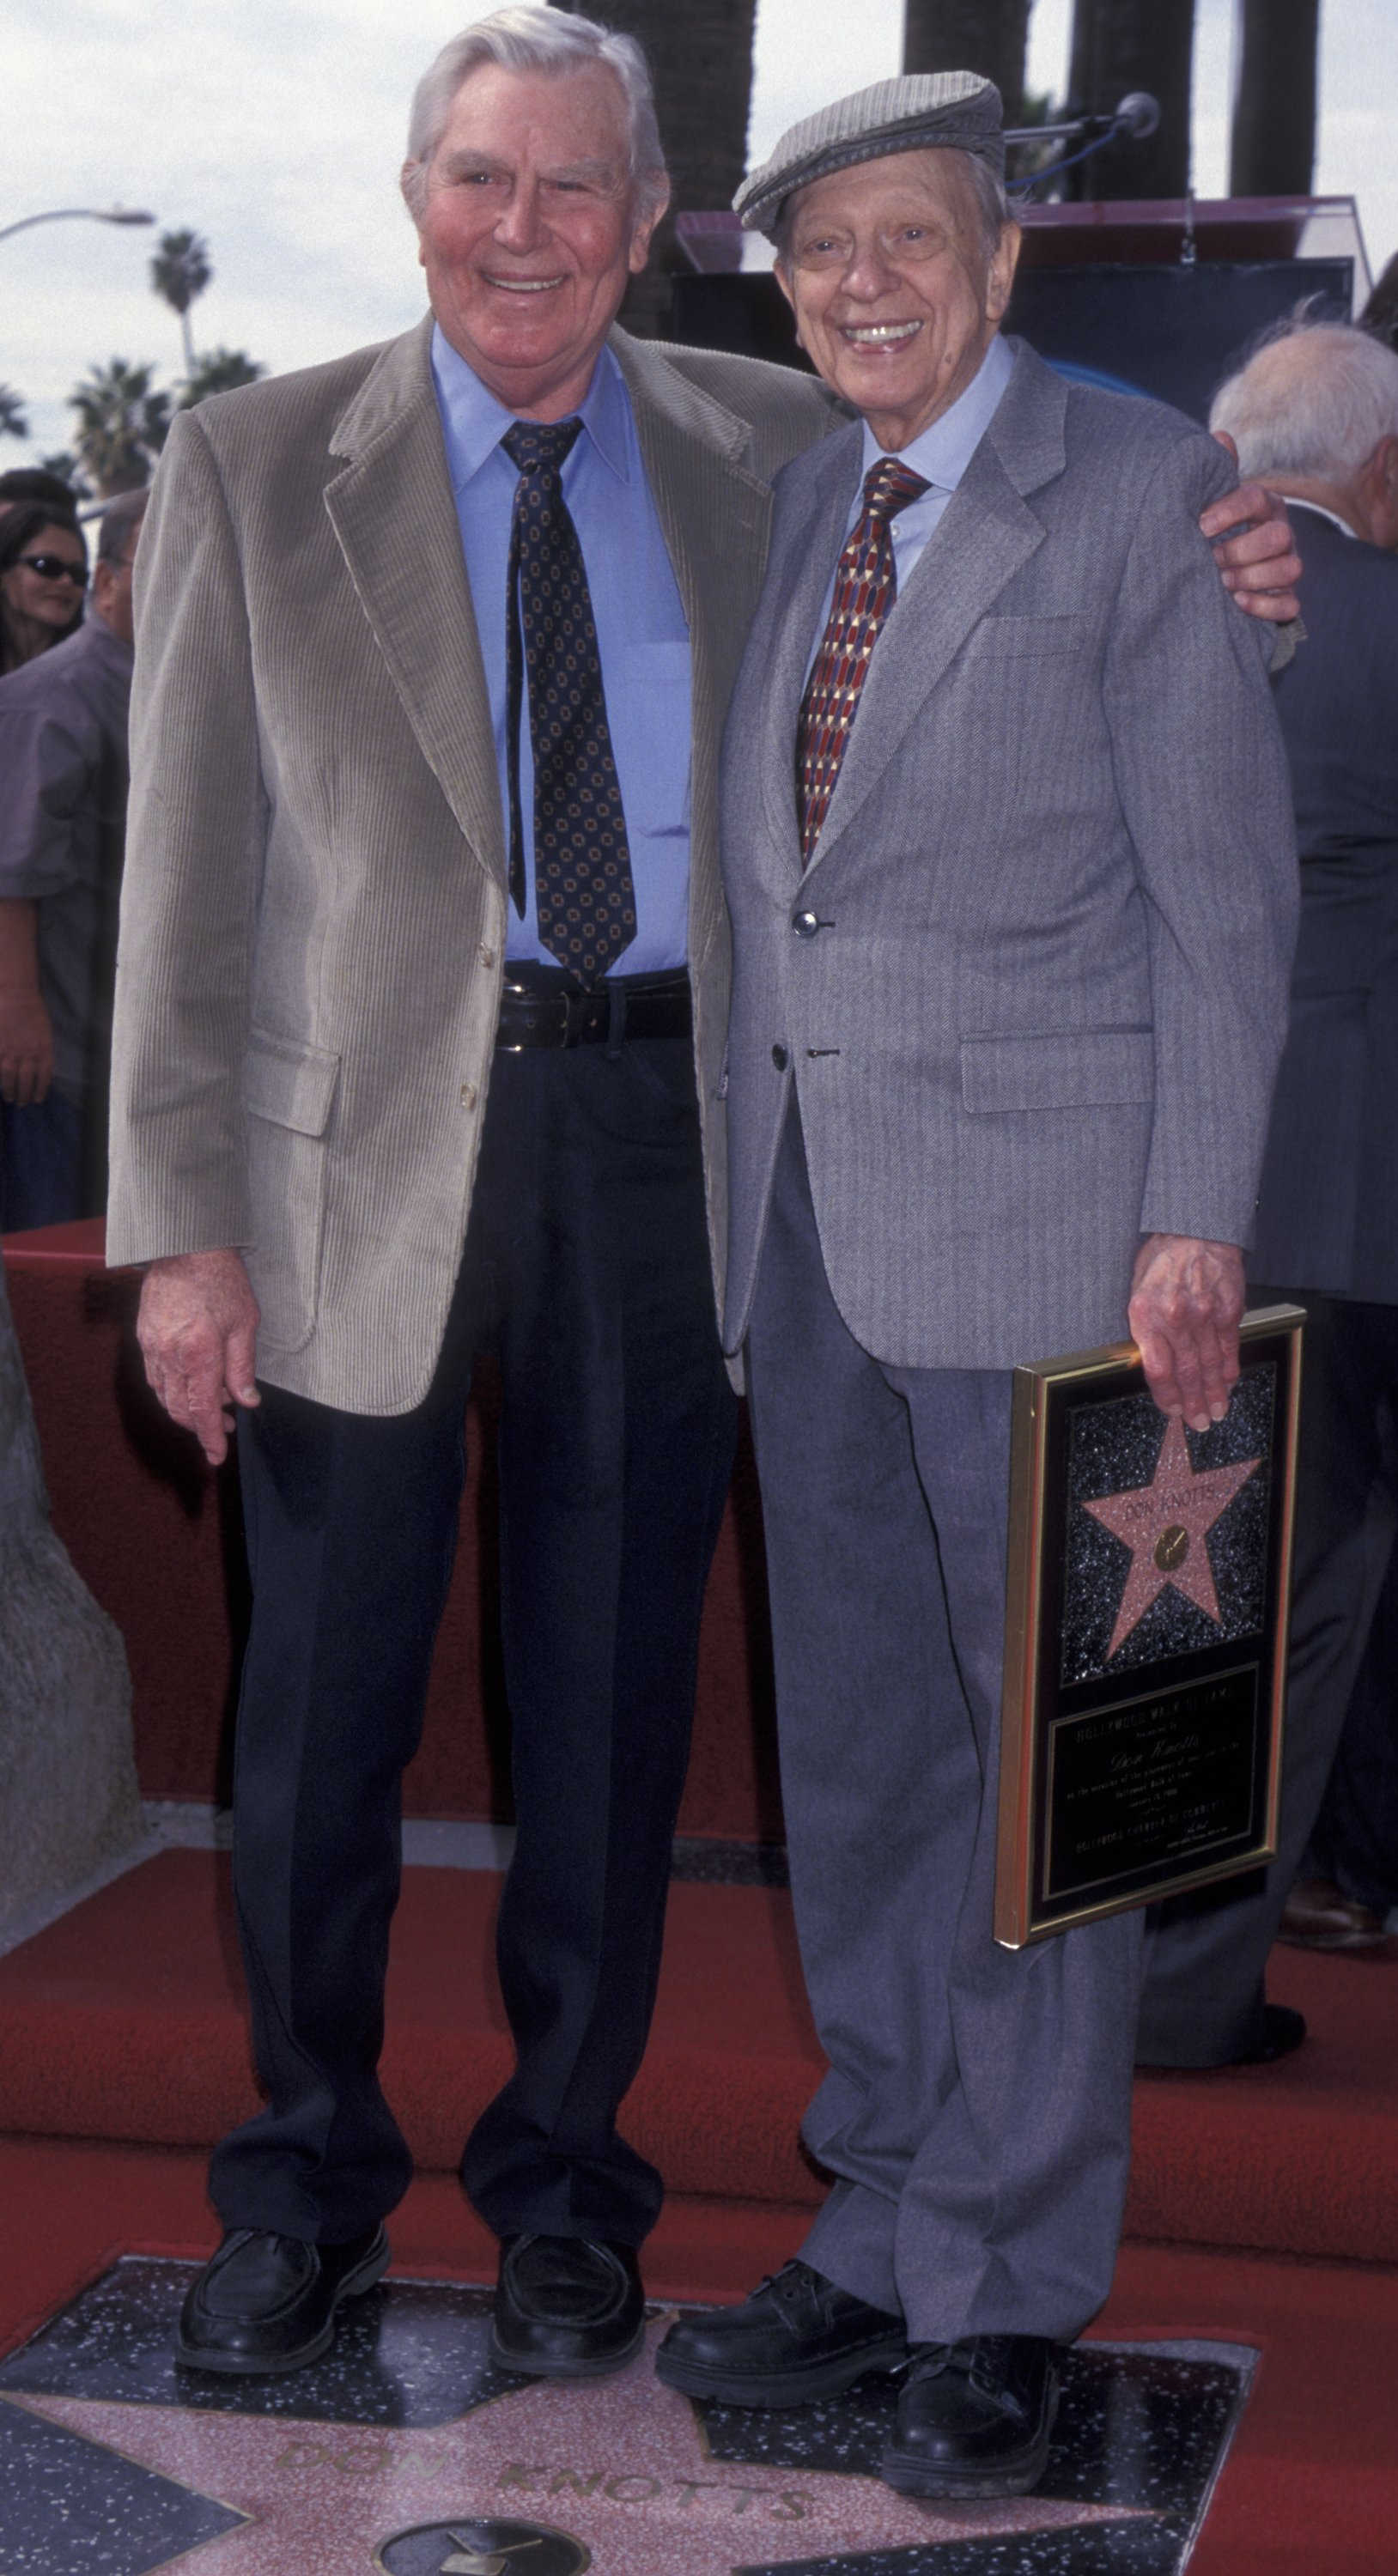 Andy Griffith attends his best friend Don Knotts event in the Hollywood Walk of Fame in 2000. | Photo: Getty Images